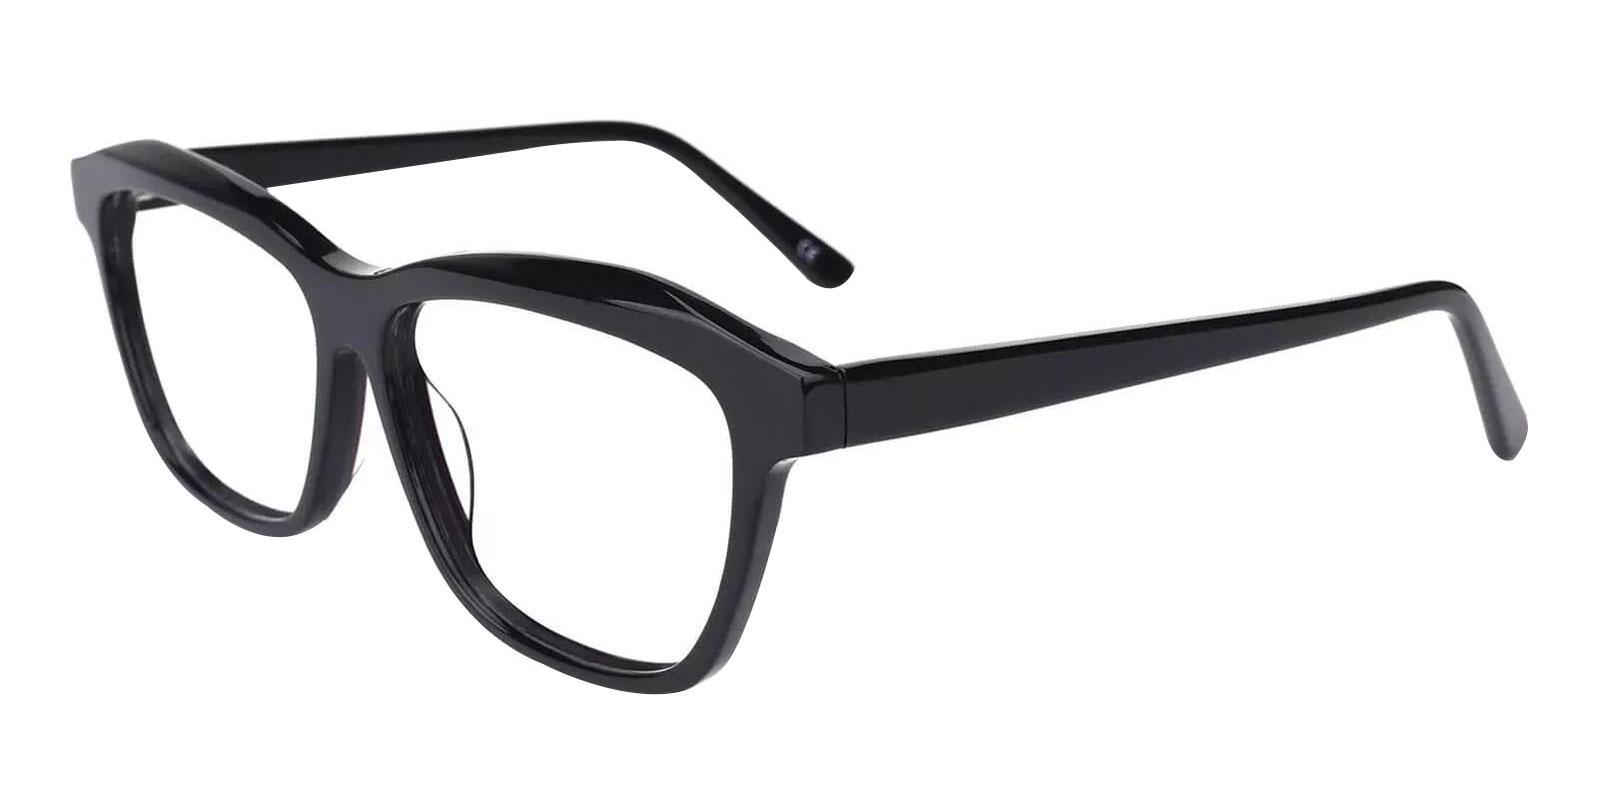 Sonia Black Acetate Eyeglasses , SpringHinges , UniversalBridgeFit Frames from ABBE Glasses